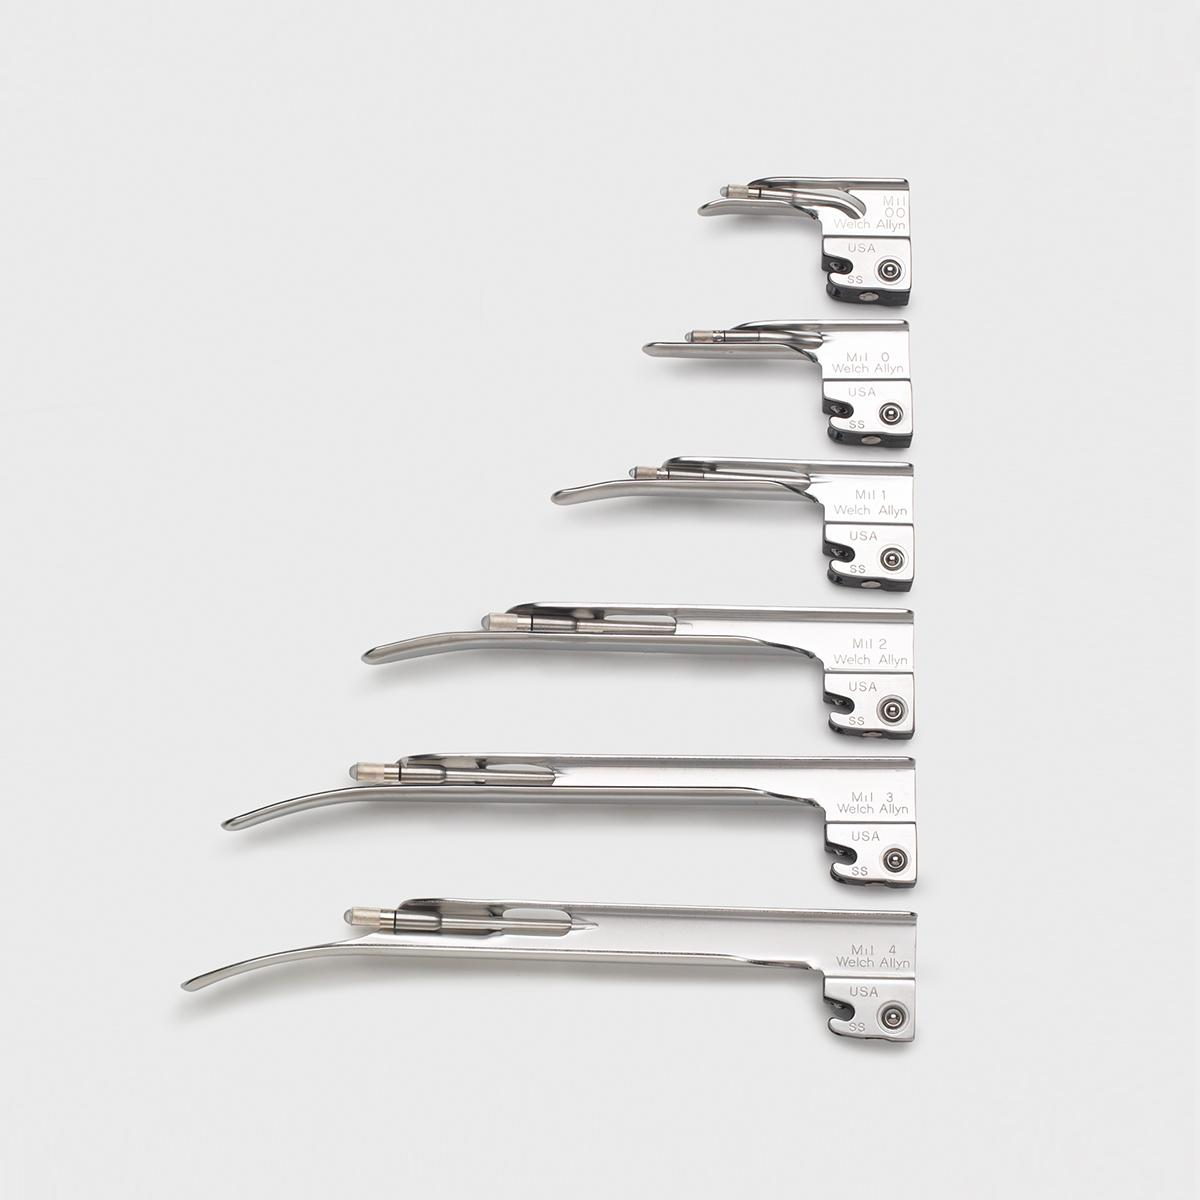 Standard (Lamp) Laryngoscope Systems Veterinary, set of Miller blades